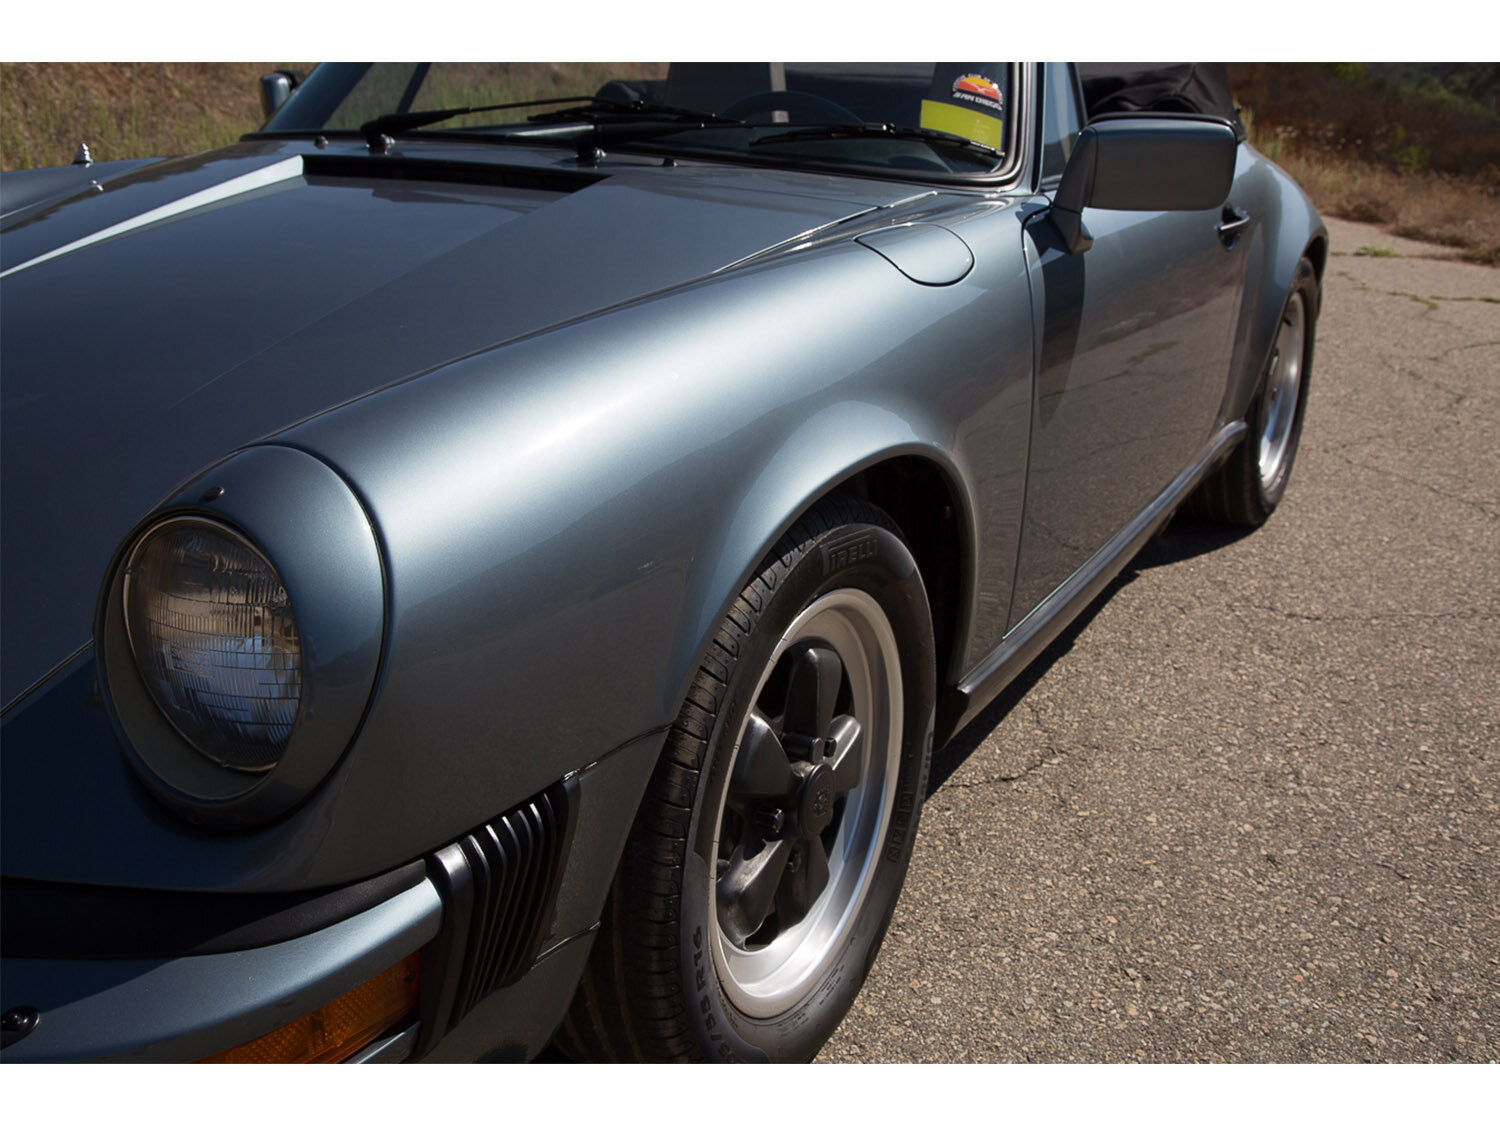 1984-carrera-cabriolet-slate-blue-911-sc-for-sale-makellos-classics_0001s_0000s_0014_1B7A6630.jpg